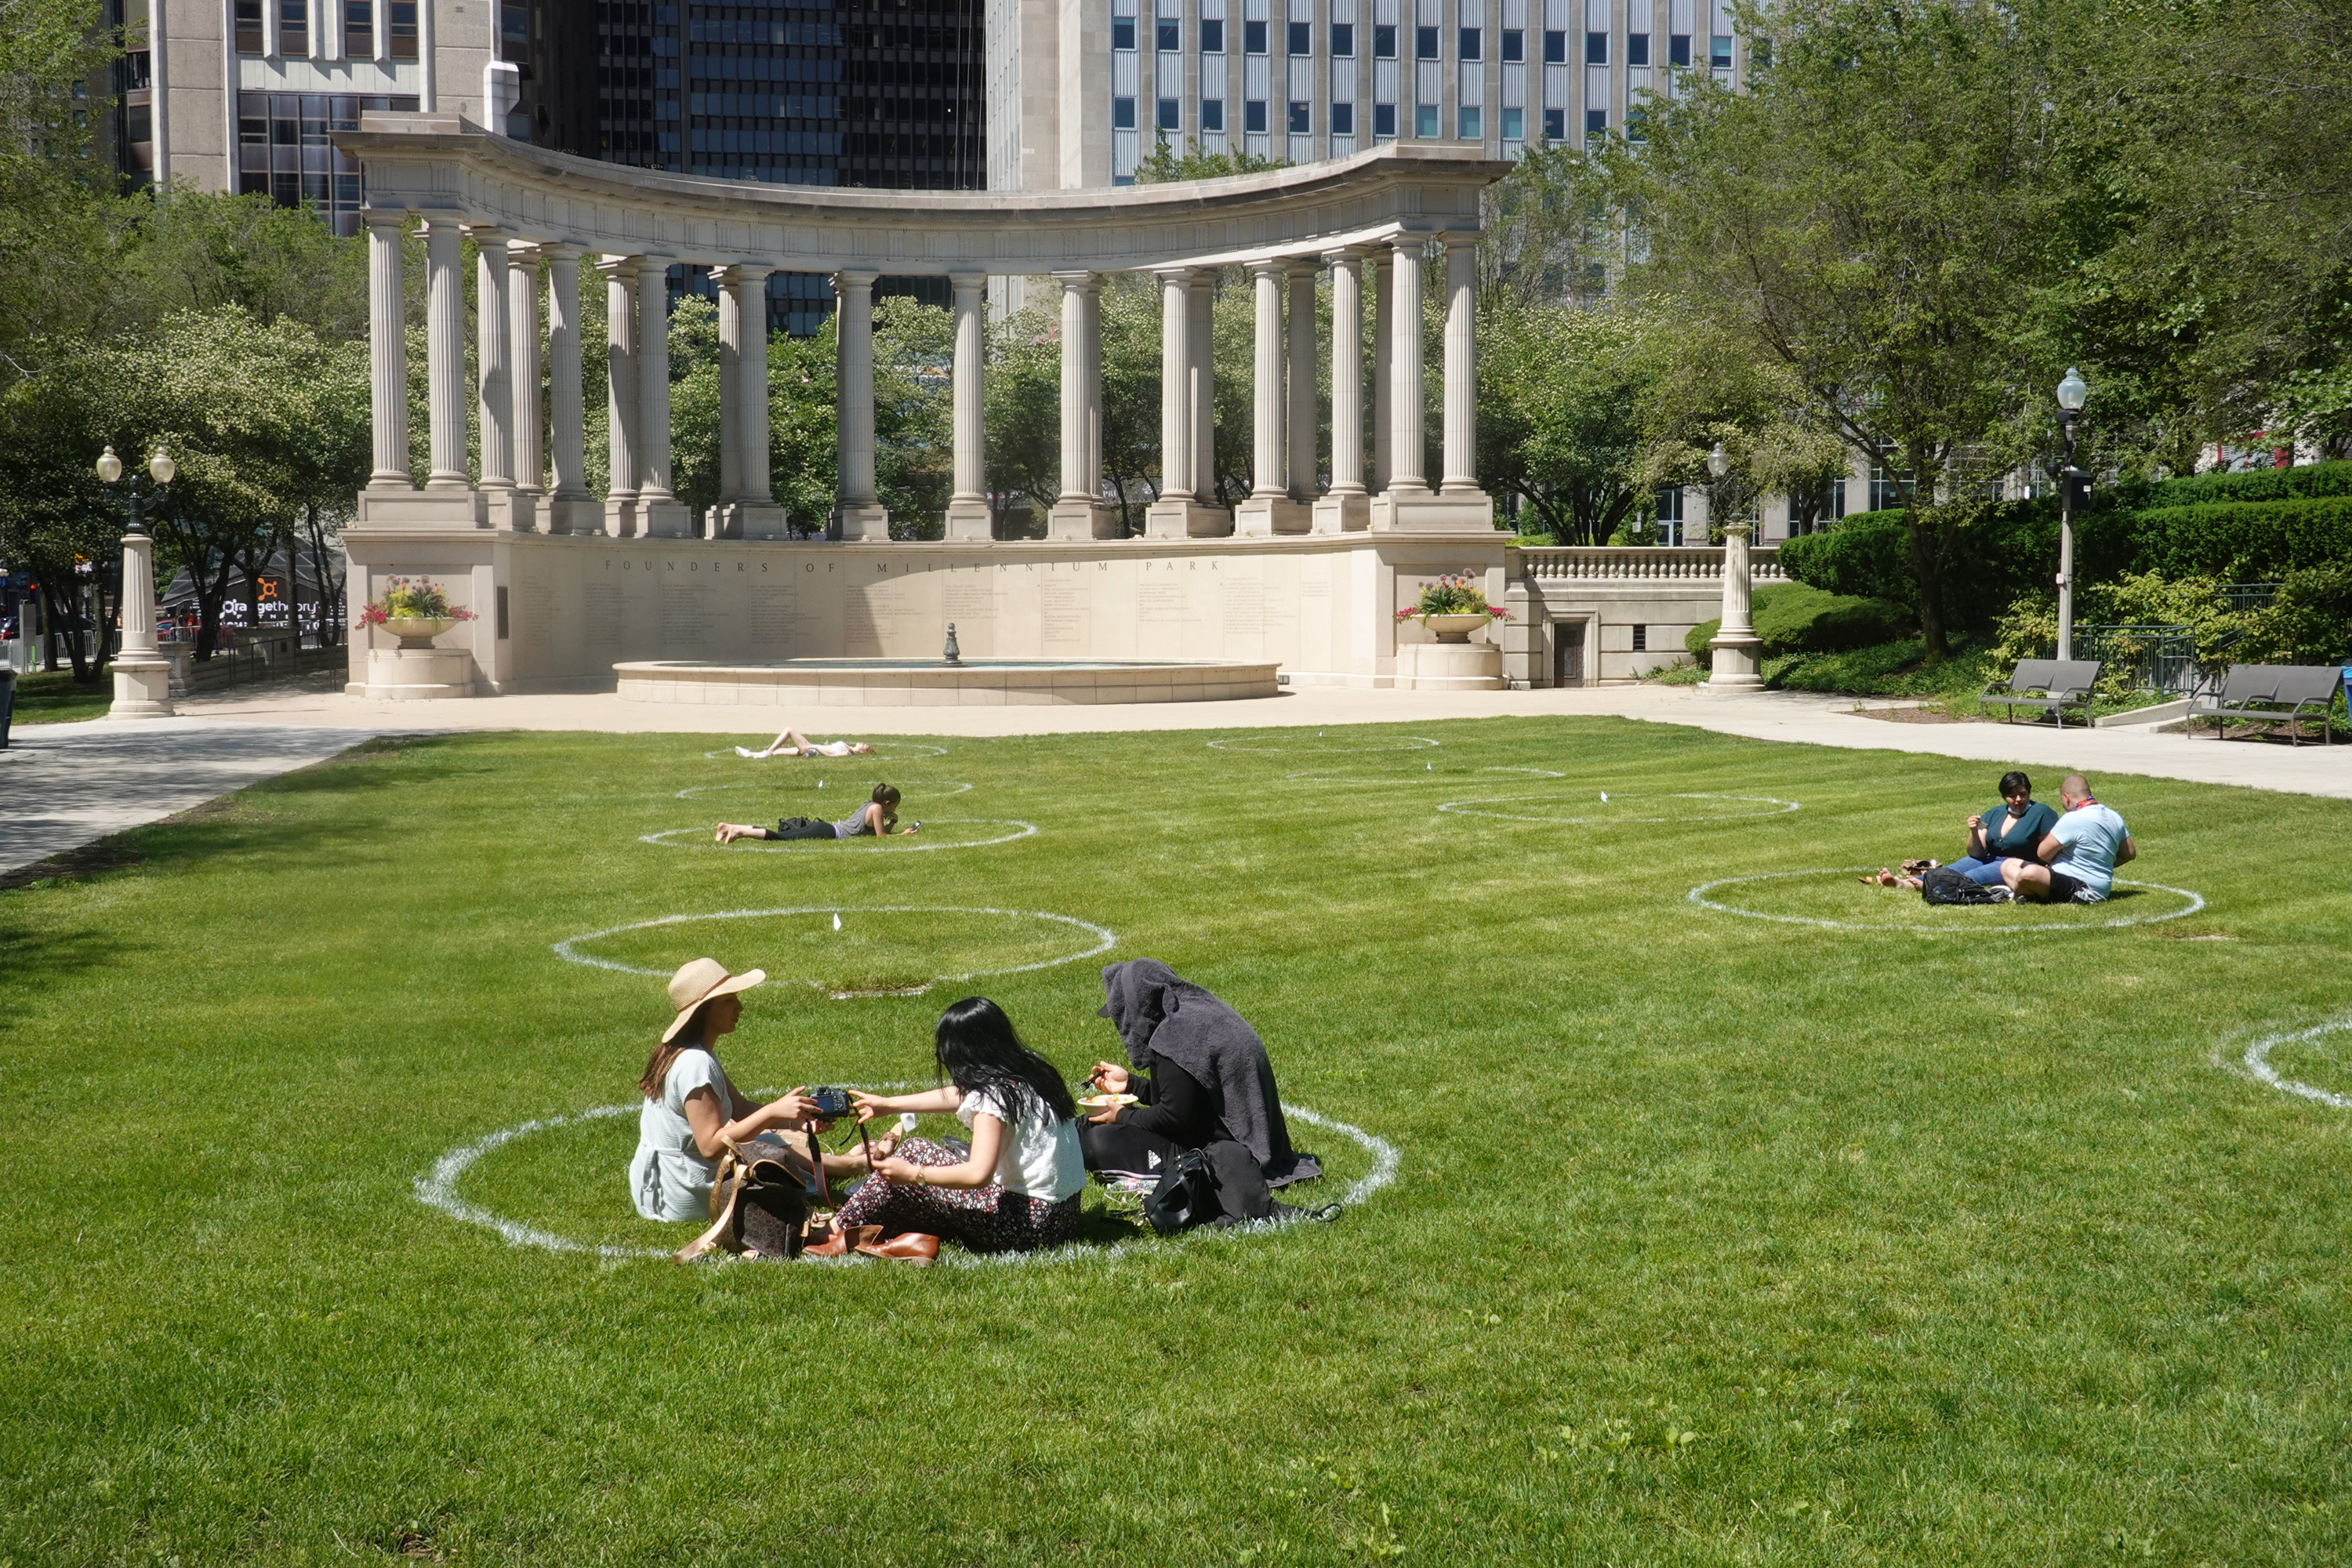 People sitting inside circles in Millennium Park